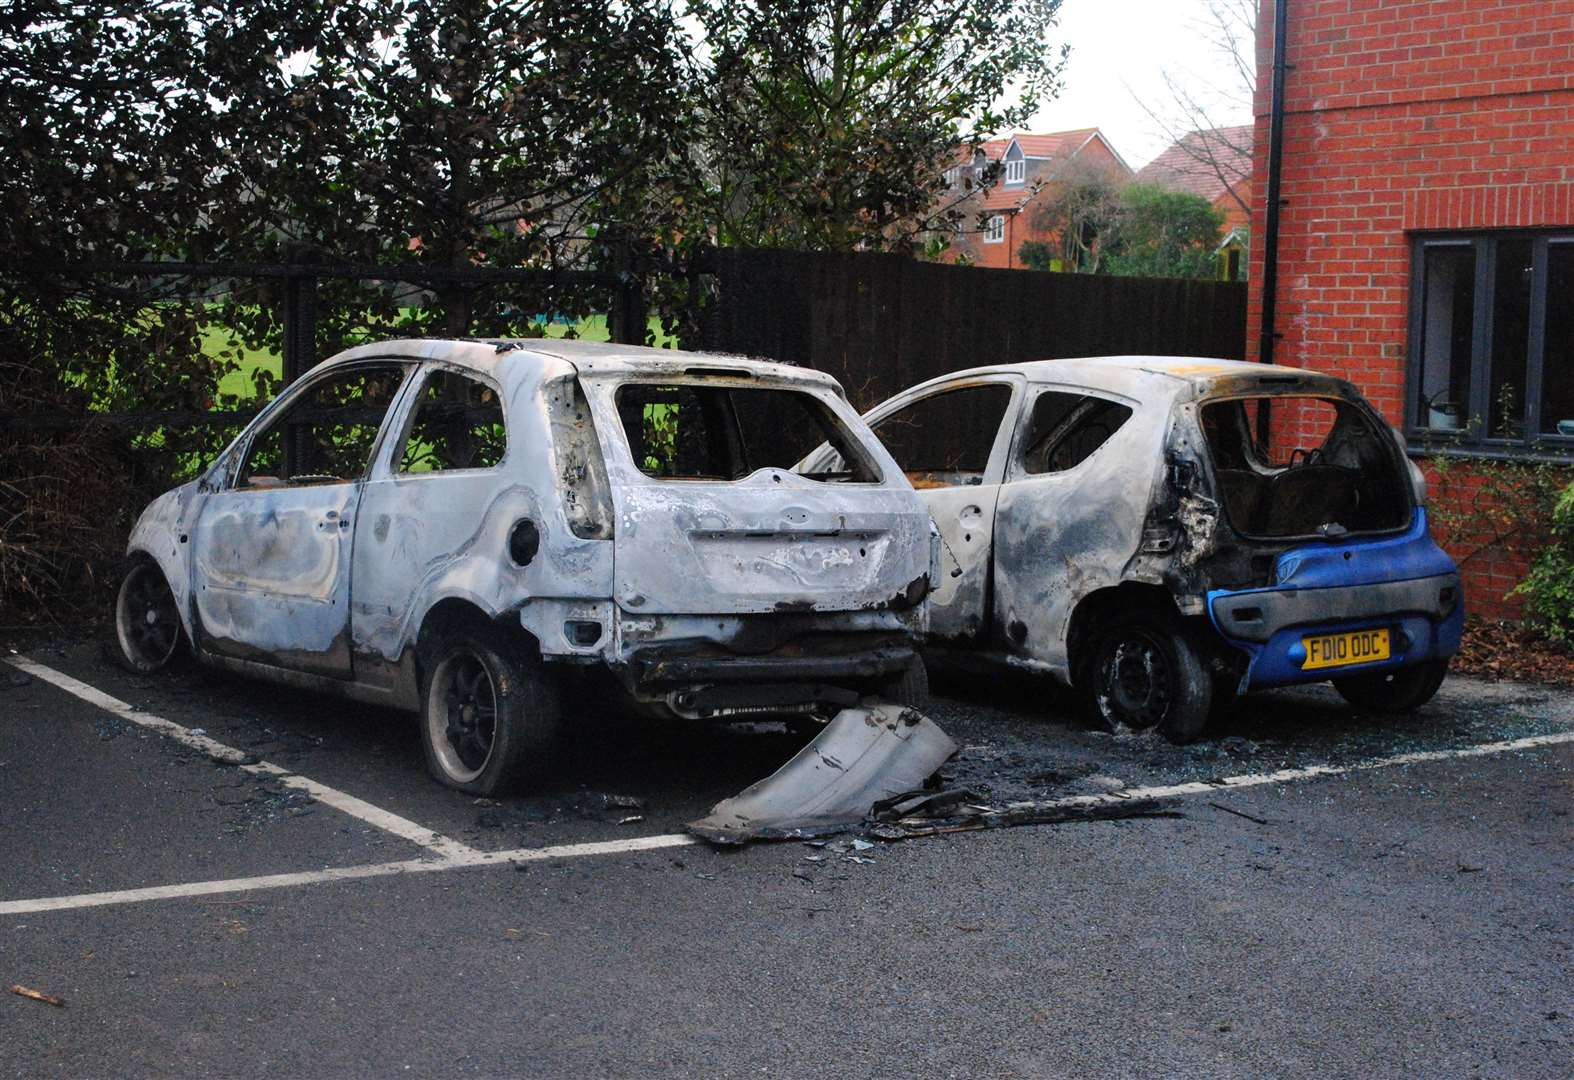 Residents fear what will happen next after arson attack destroys two cars outside flats